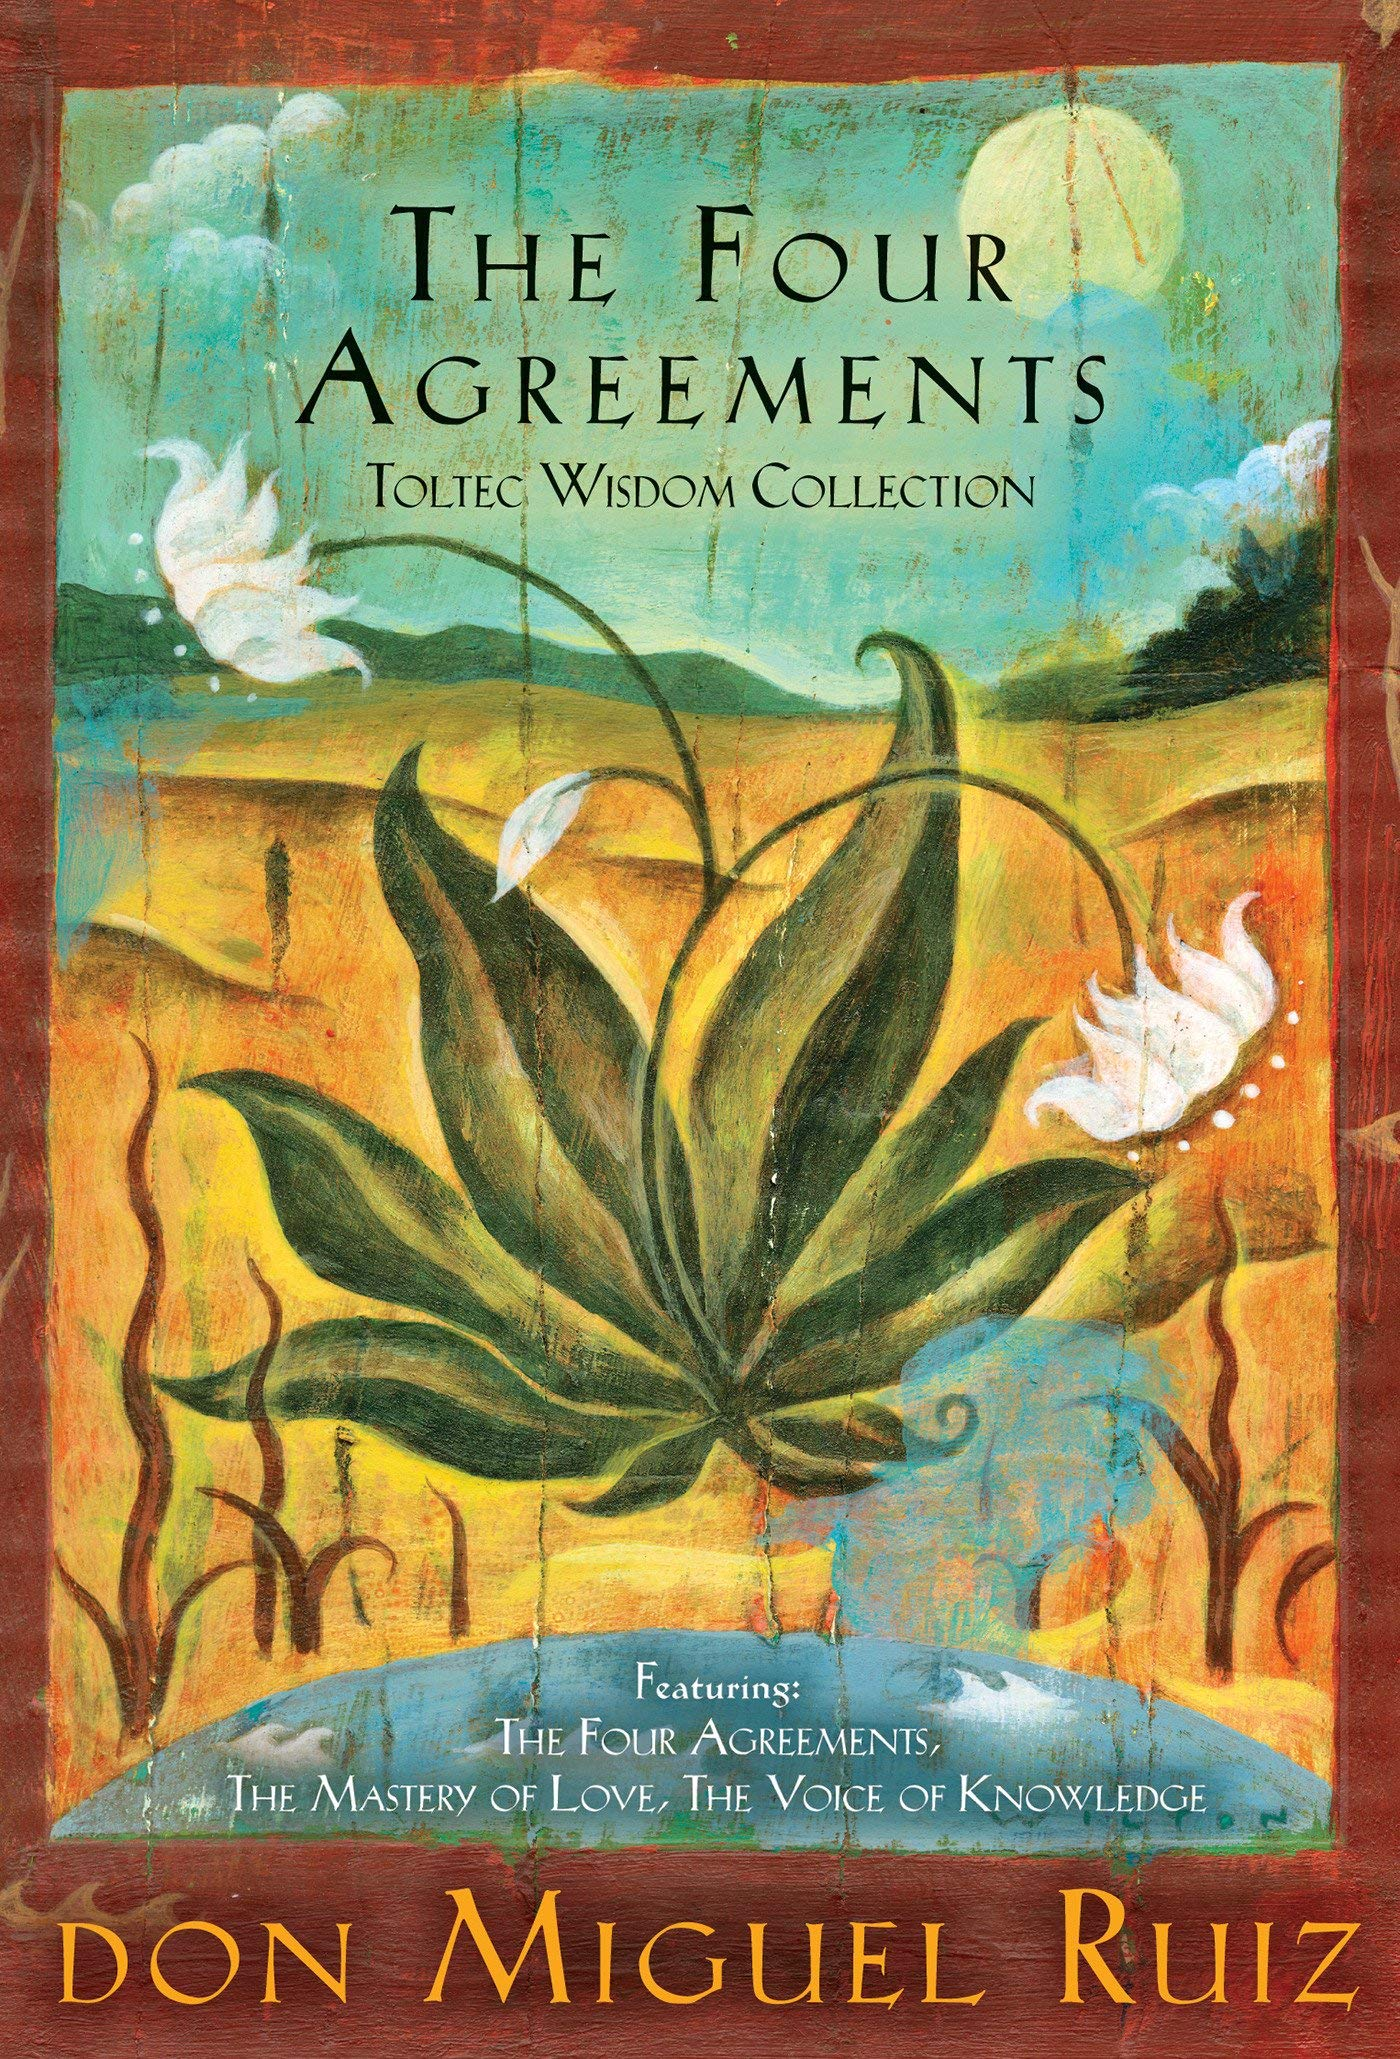 he Four Agreements Toltec Wisdom Collection by Don Miguel Ruiz.